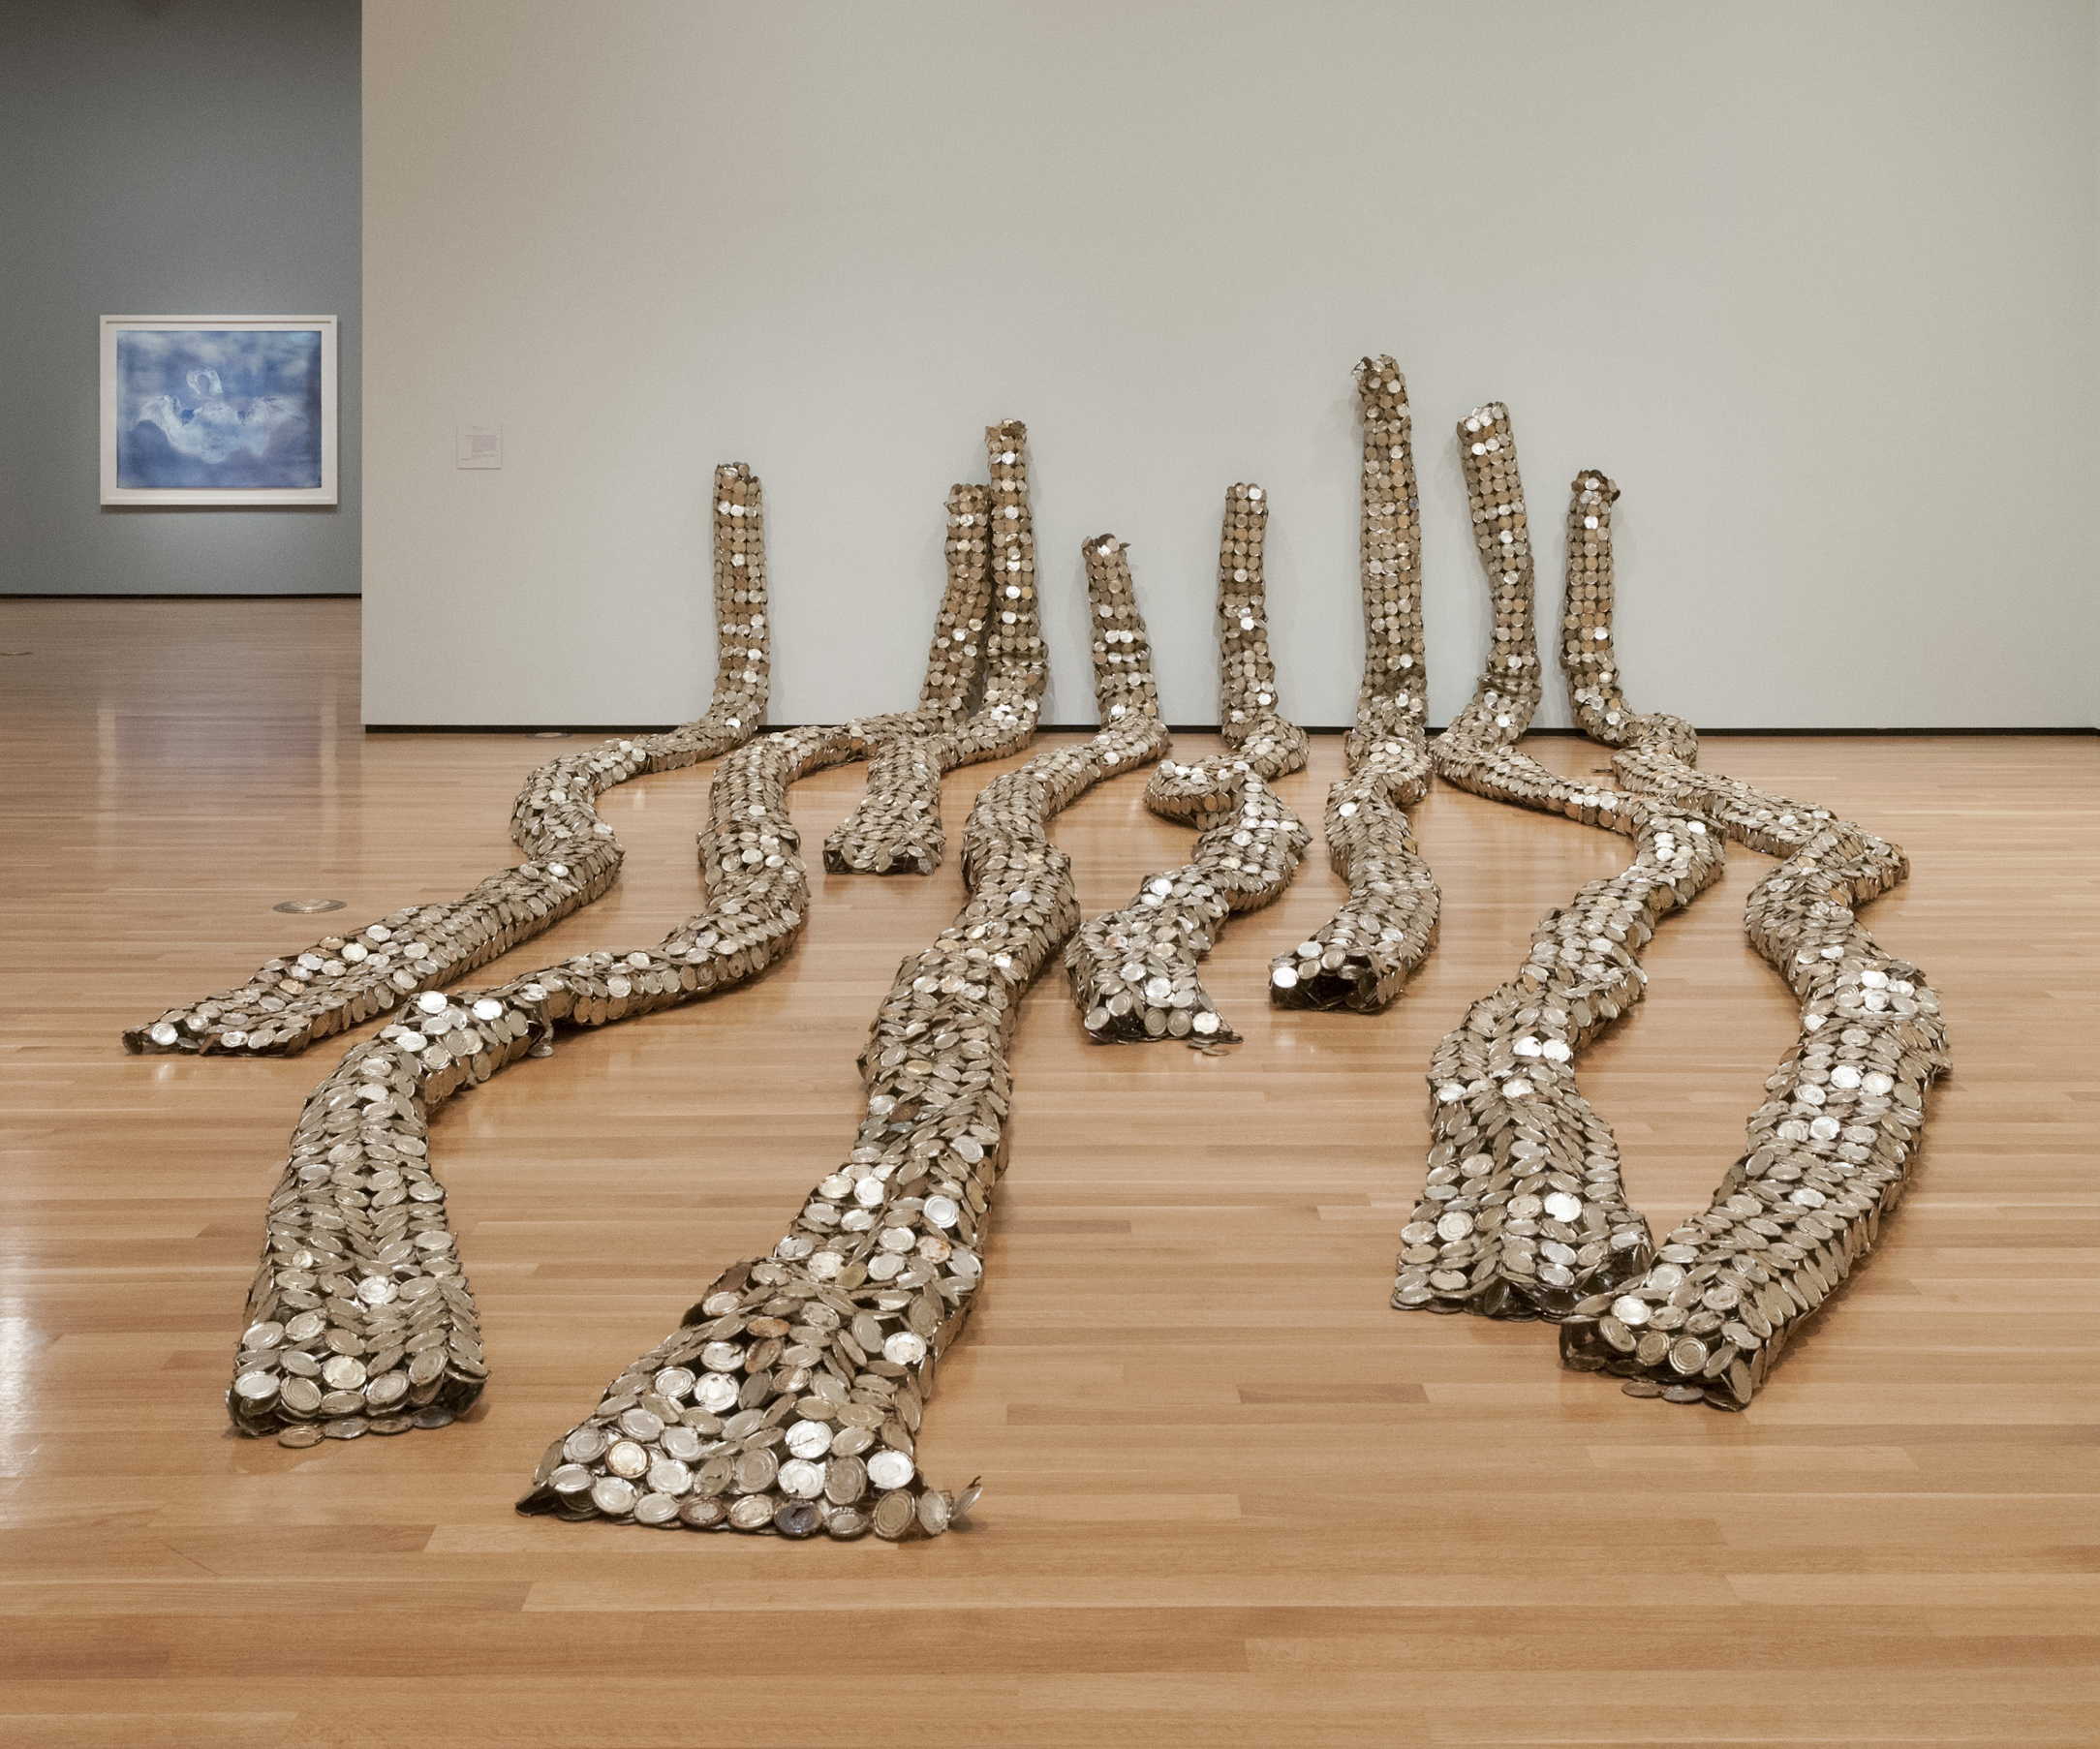 Sheets of linked milk tin lids were rolled into long, cylindrical forms to make Anatsui's Drainpipe (2010).